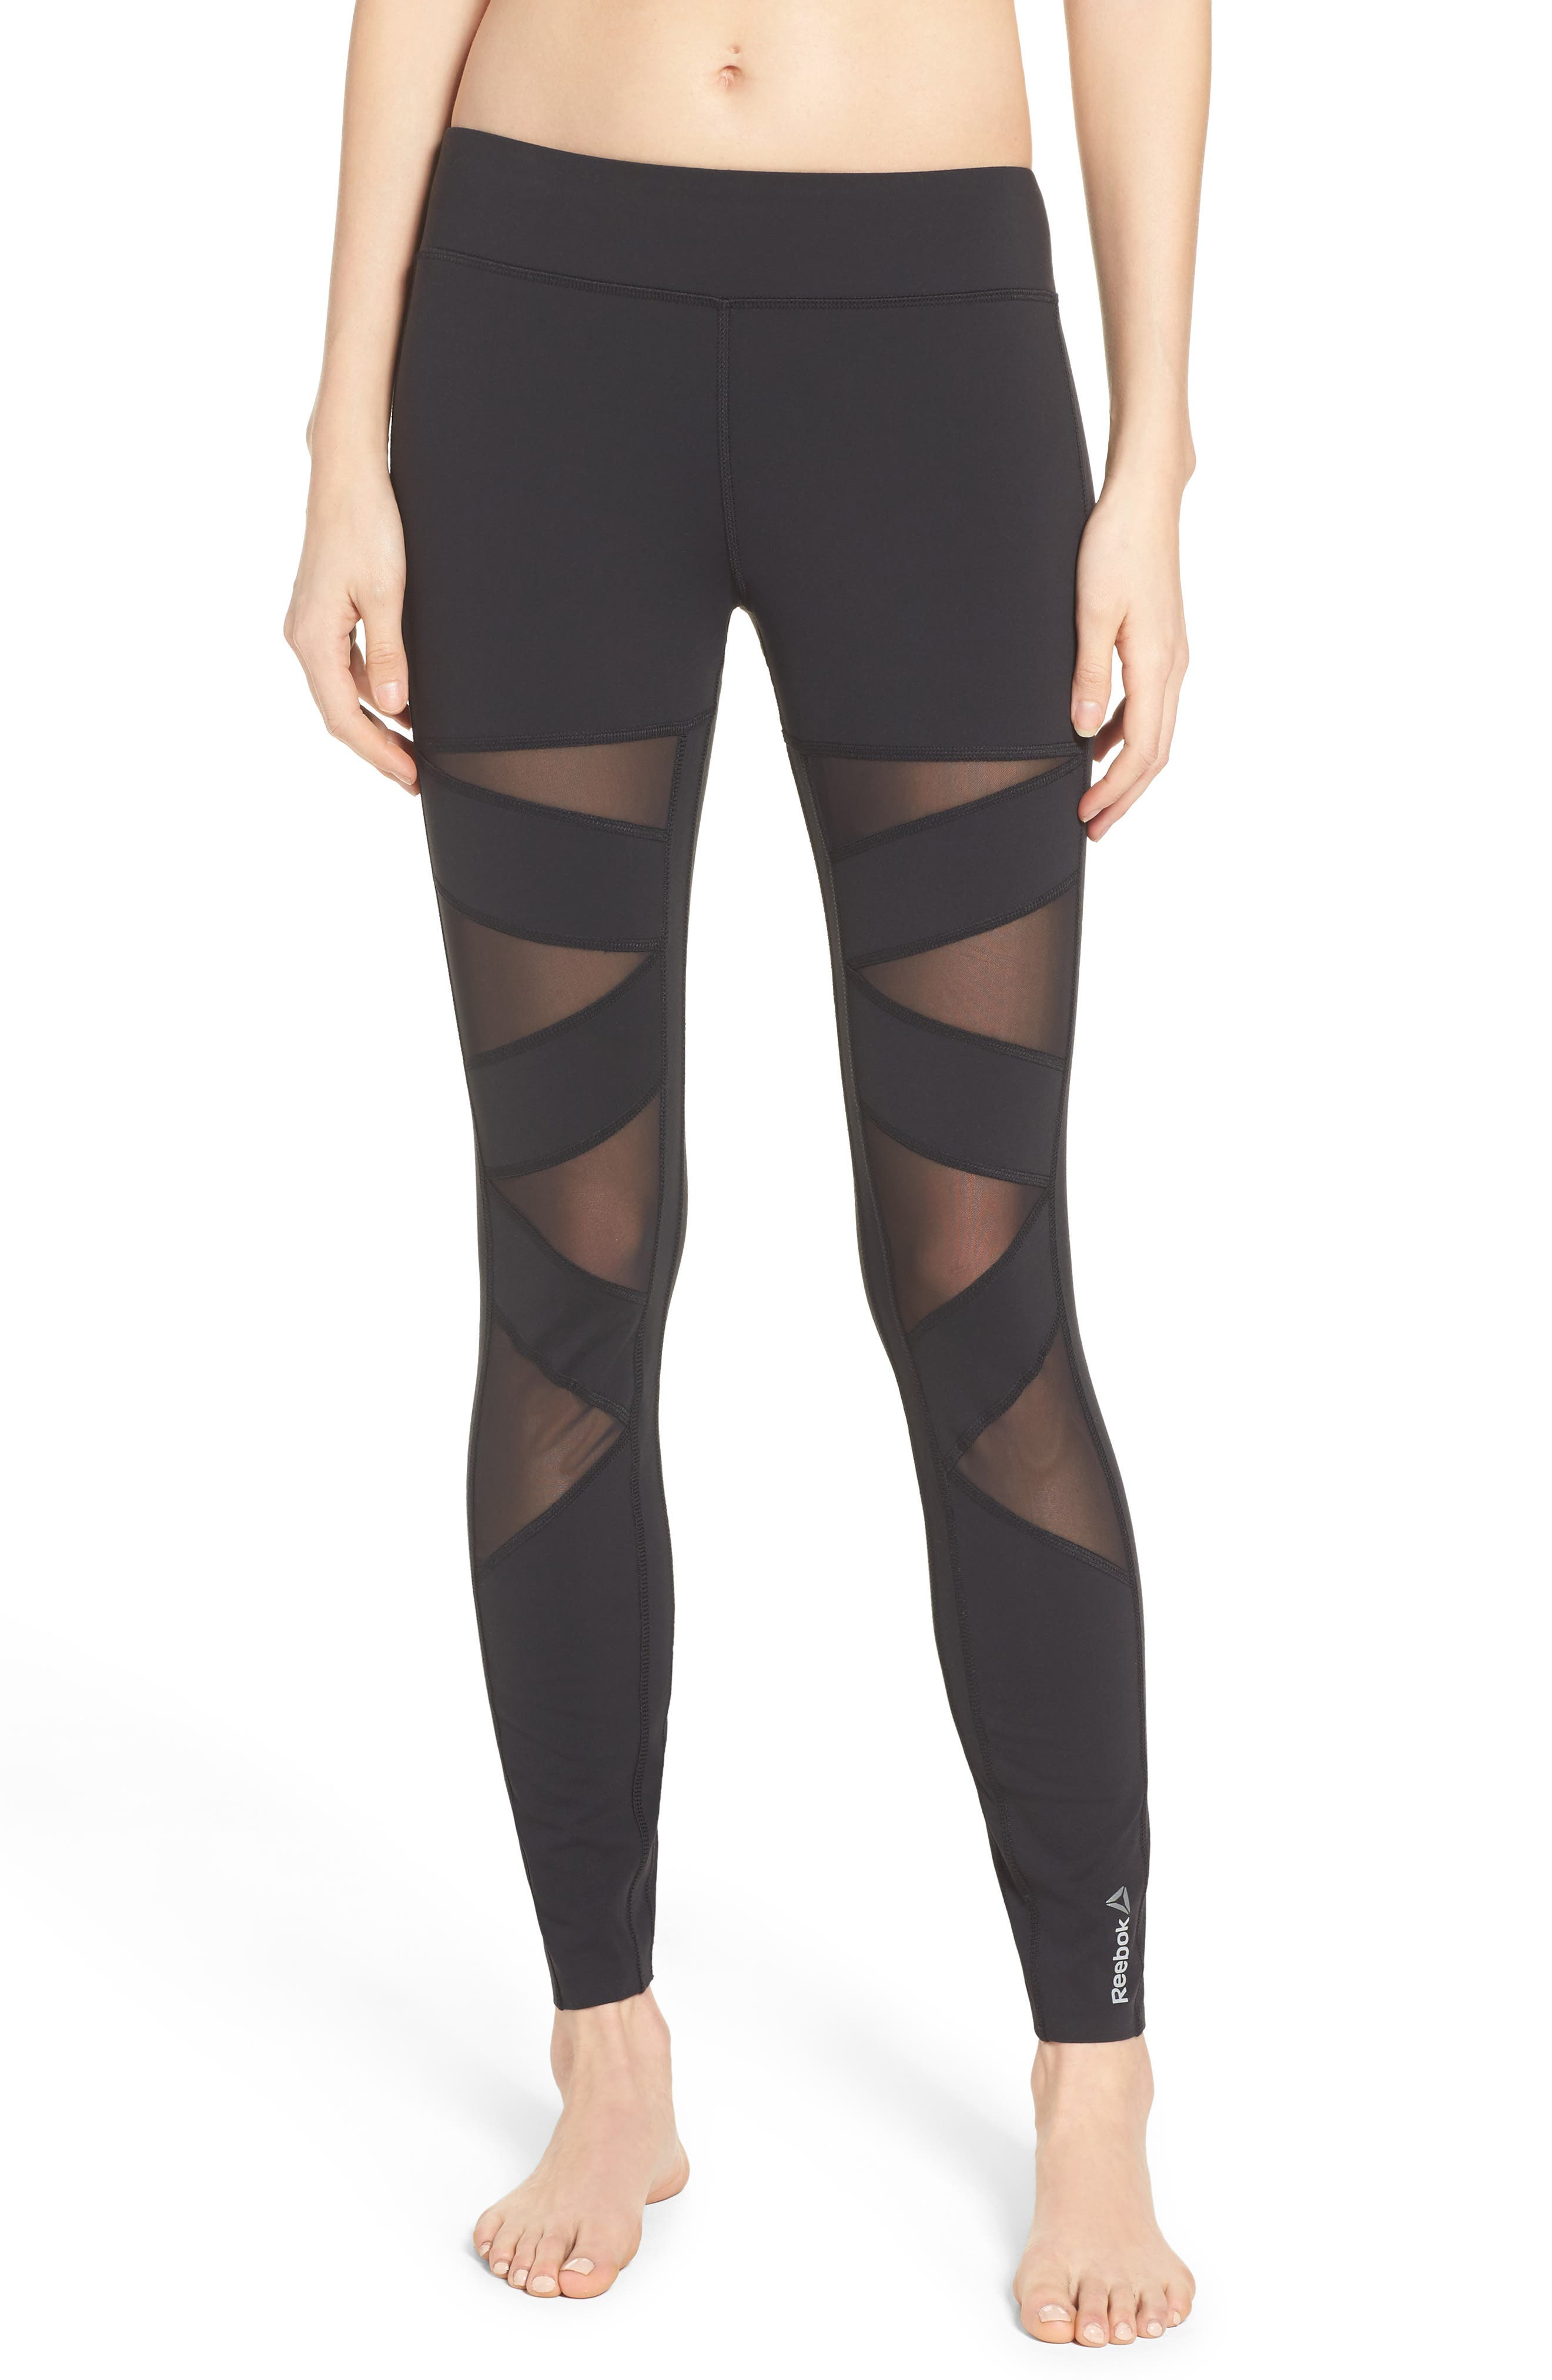 Reebok Pinnacle Cardio Tights